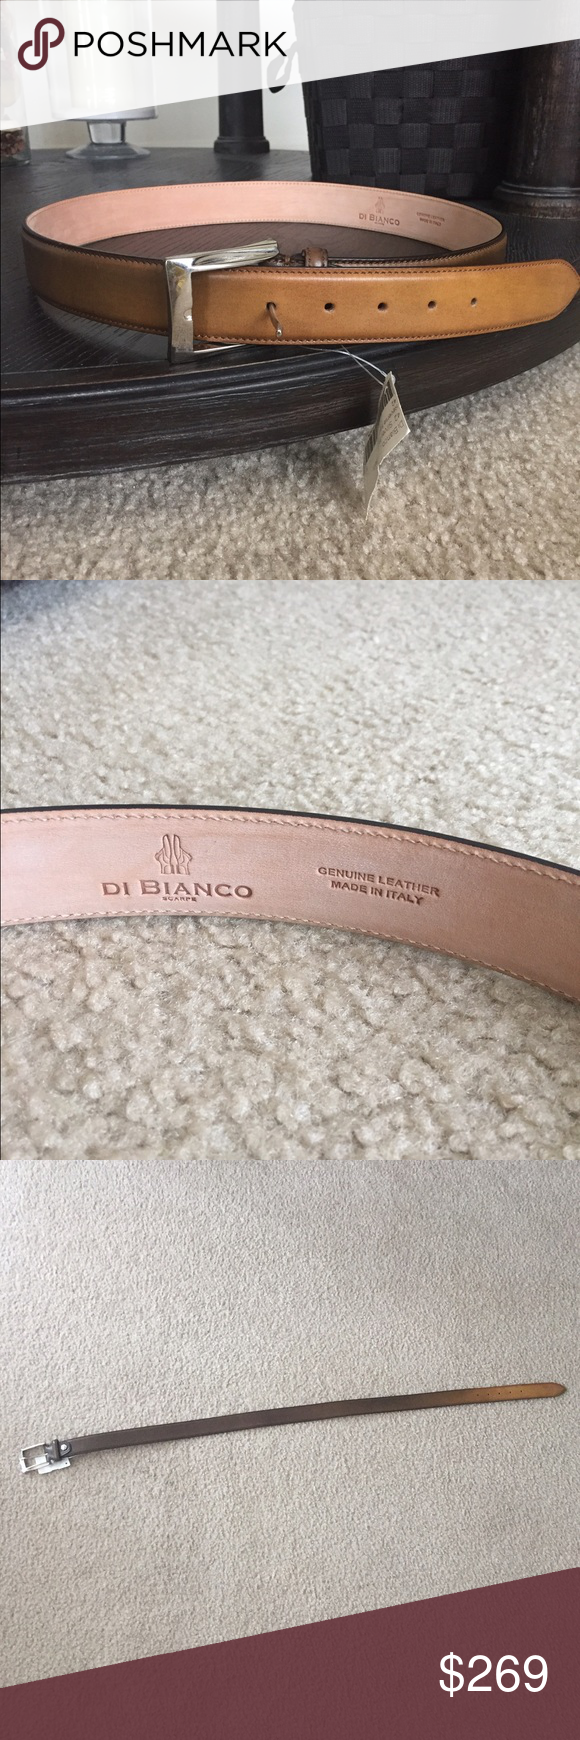 Di Bianco belt Di Bianco Men's genuine leather belt. Made in Italy. Brand new belt for me. 36 inch long for men. Authentic leather. Di Bianco Accessories Belts